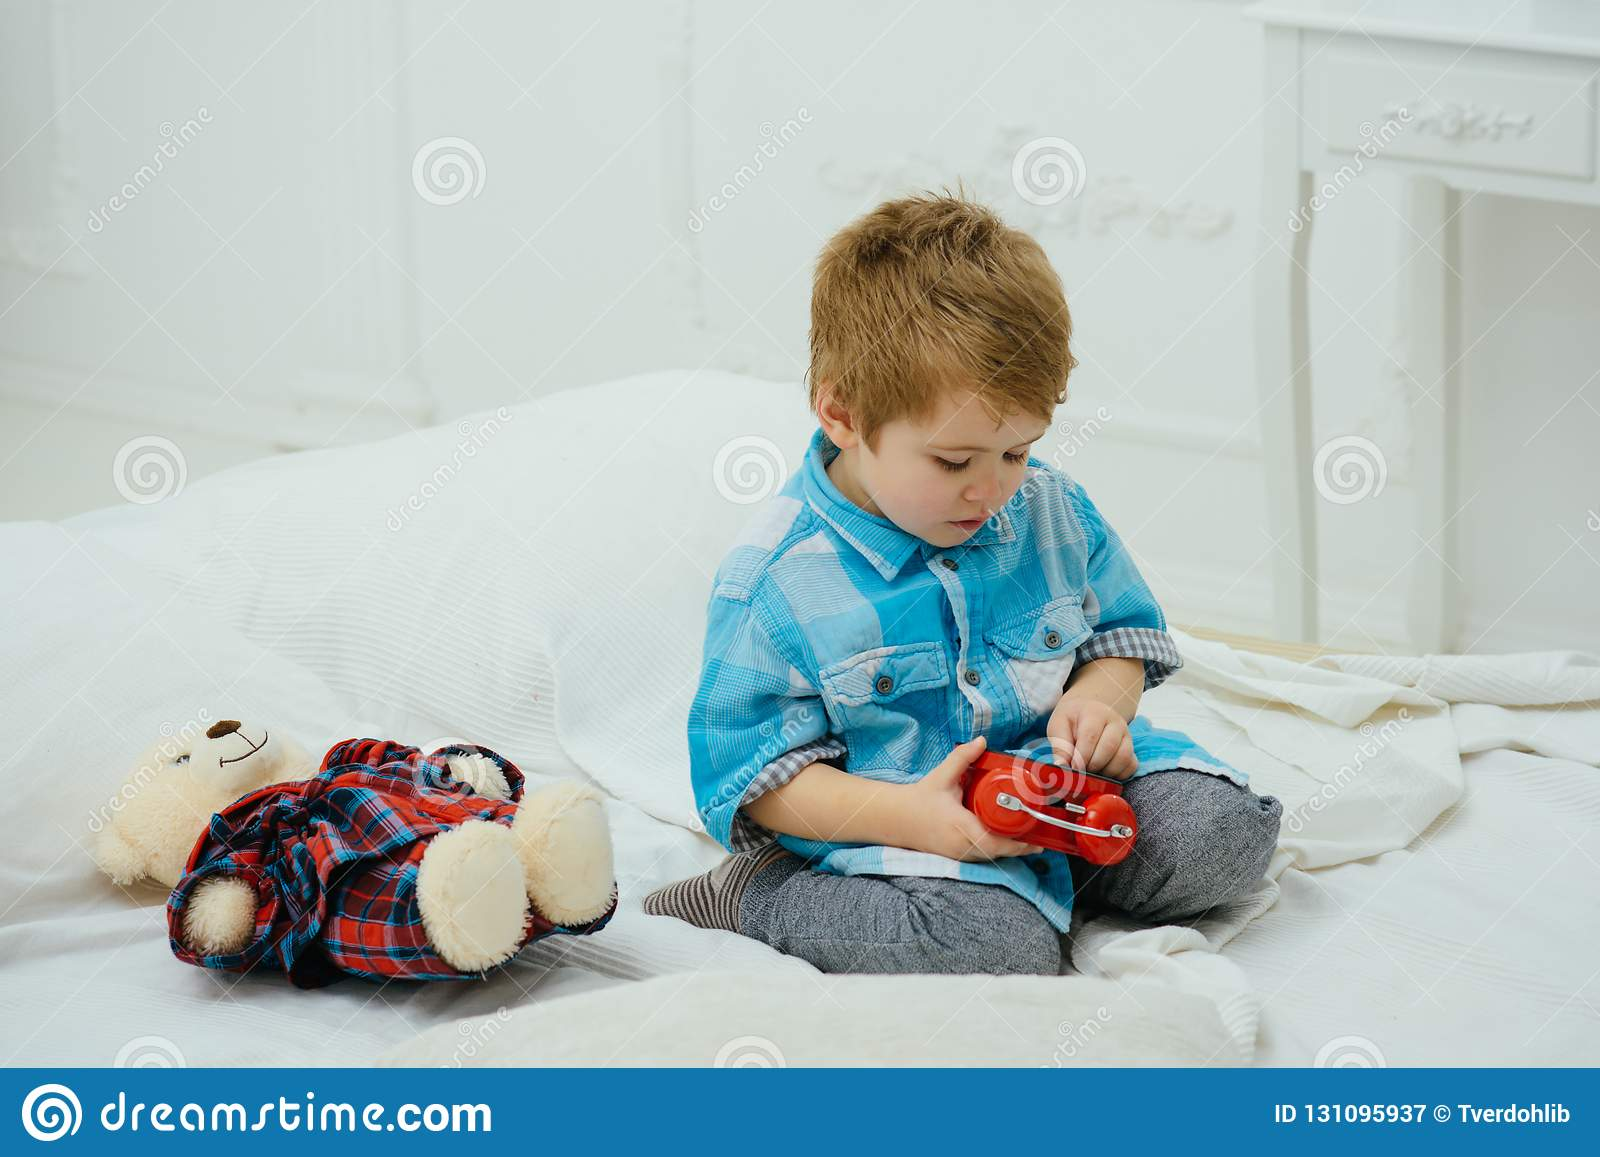 Happy family and childrens day. happy childhood. Care and development. Amazing day. little boy play at home. Little boy